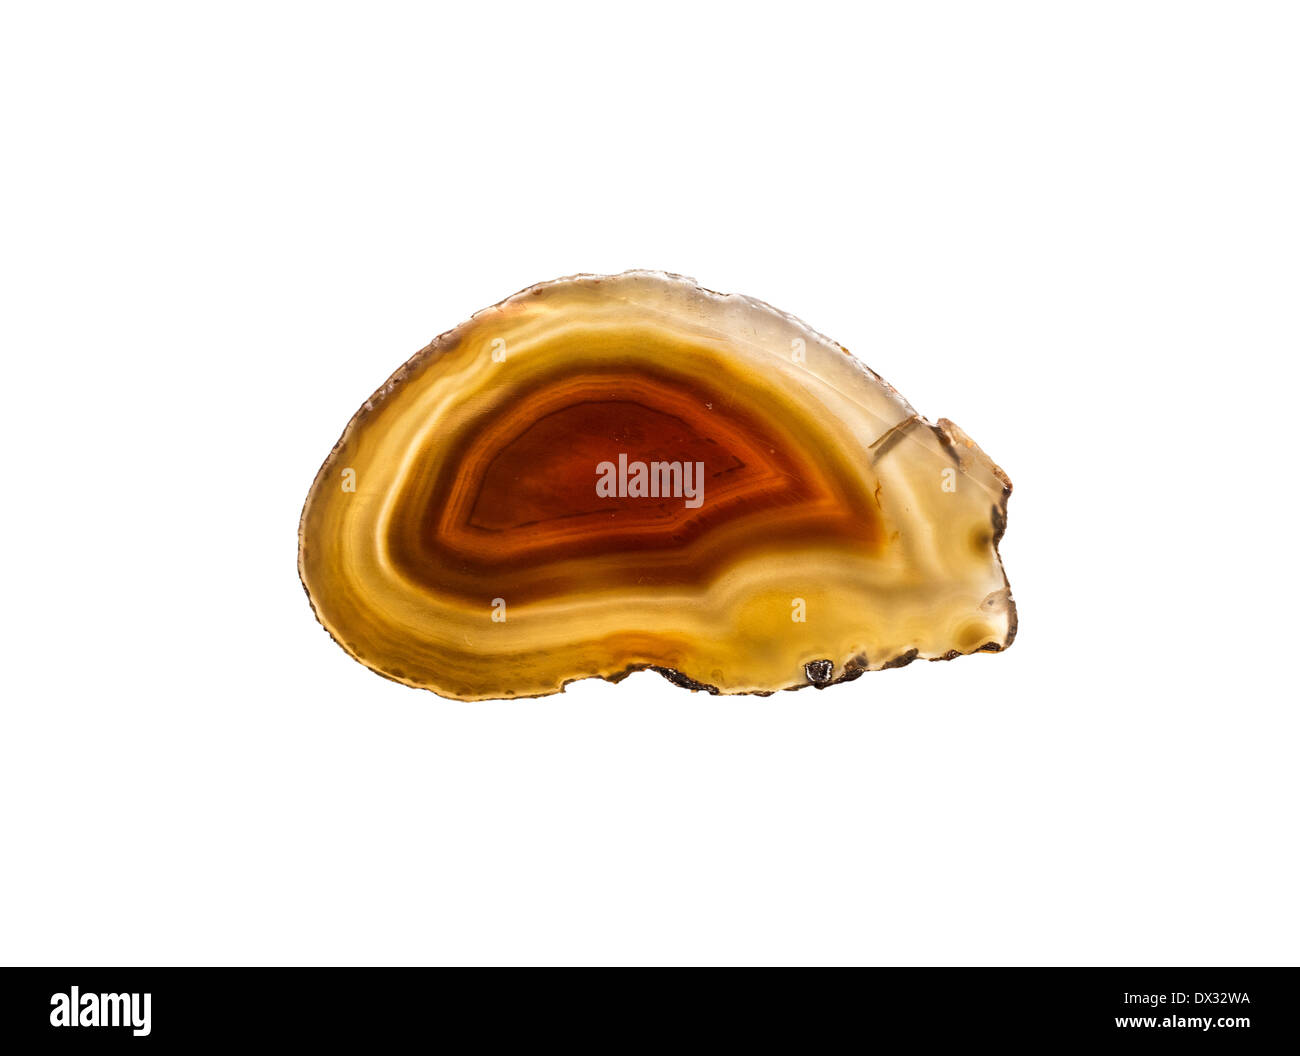 Slice of polished natural (unstained) Agate - Stock Image